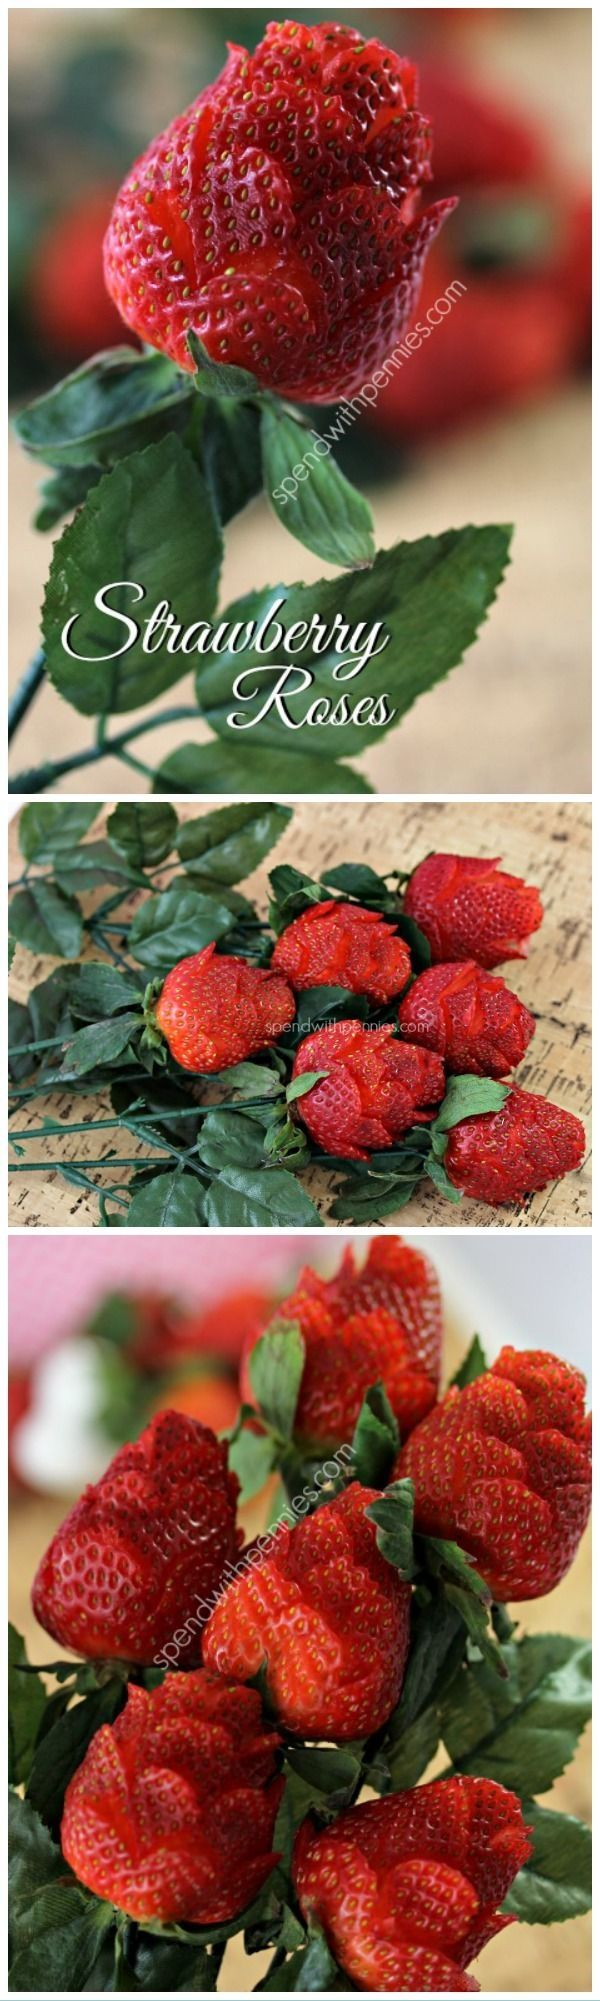 How to Make Strawberry RosesHow to Make Strawberry Roses Love it? Pin it to SAVE it and SHARE it! Follow Spend With Pennies on Pinterest for more great